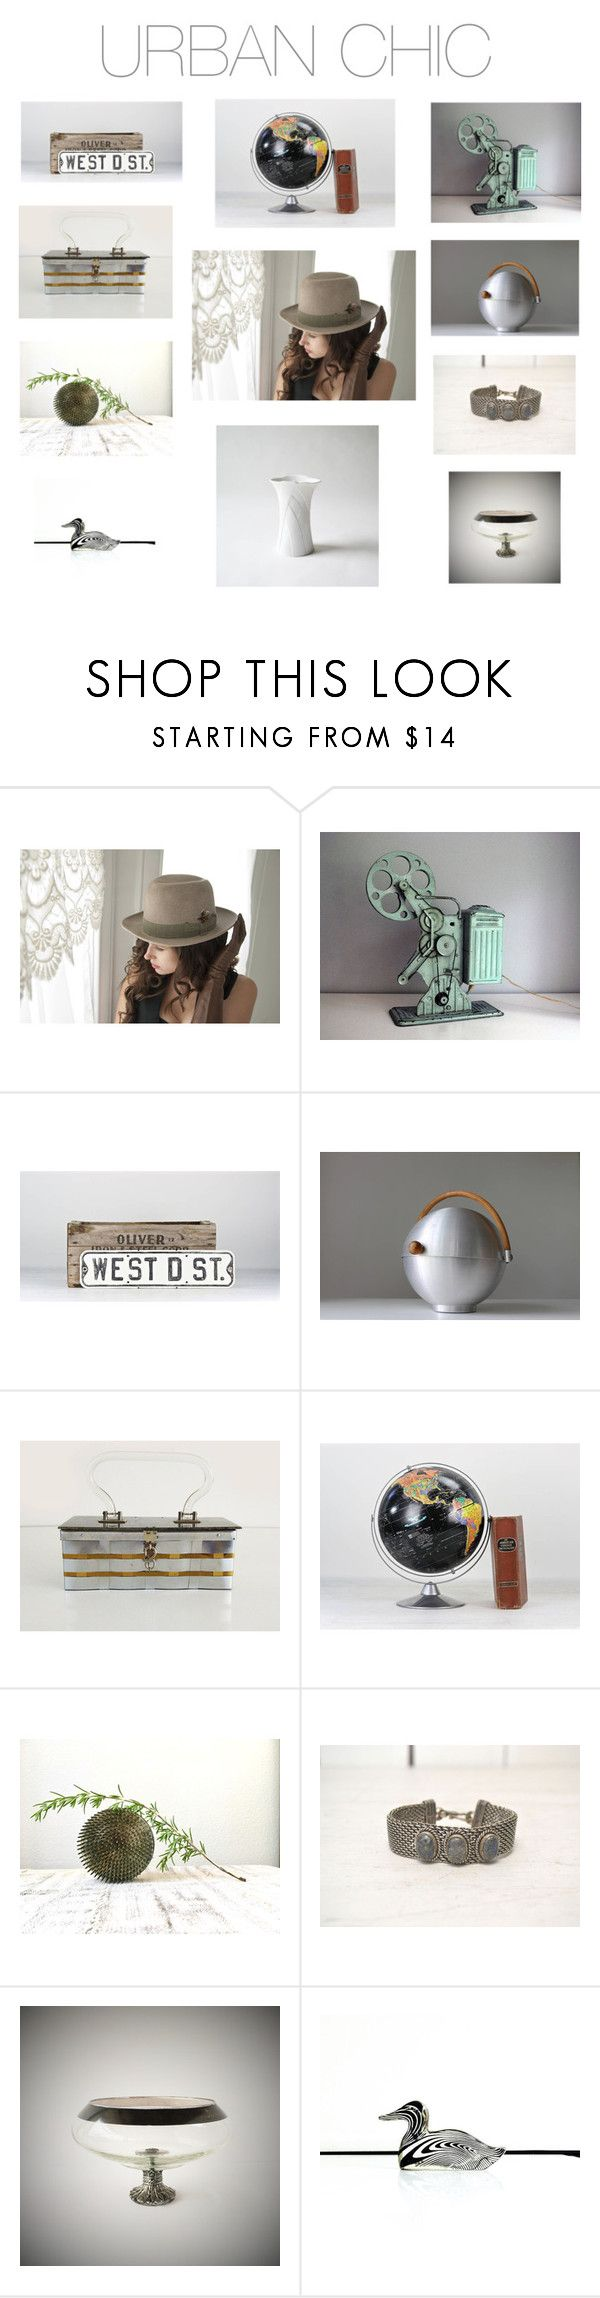 """Urban Chic Decor From the Vintage and Main Collective"" by averyandallen ❤ liked on Polyvore featuring interior, interiors, interior design, home, home decor, interior decorating, Ciel, Dorothy Thorpe, Kaiser and vintage"